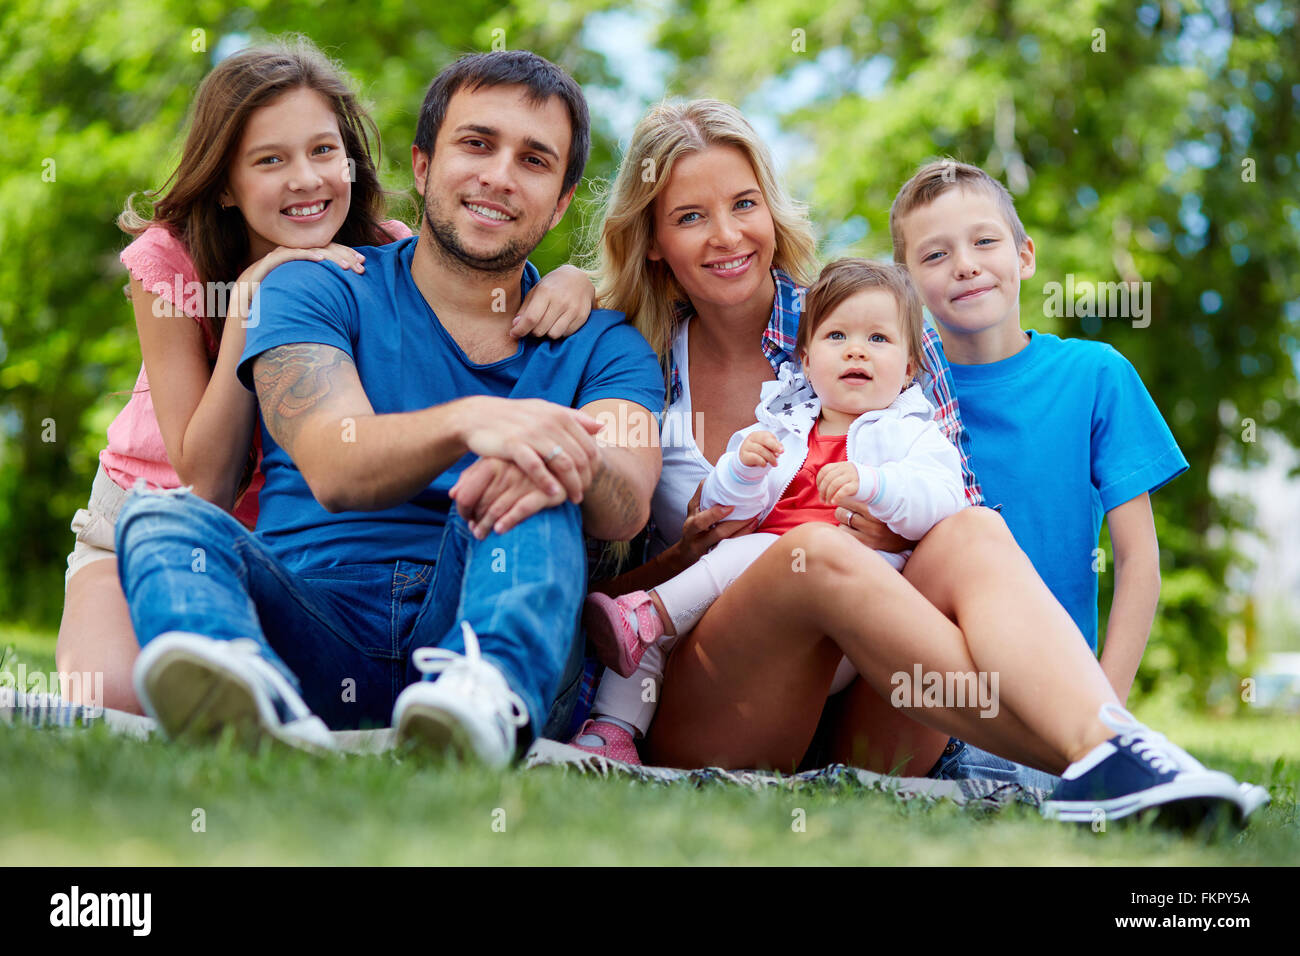 Portrait of a happy family of five sitting on grass - Stock Image